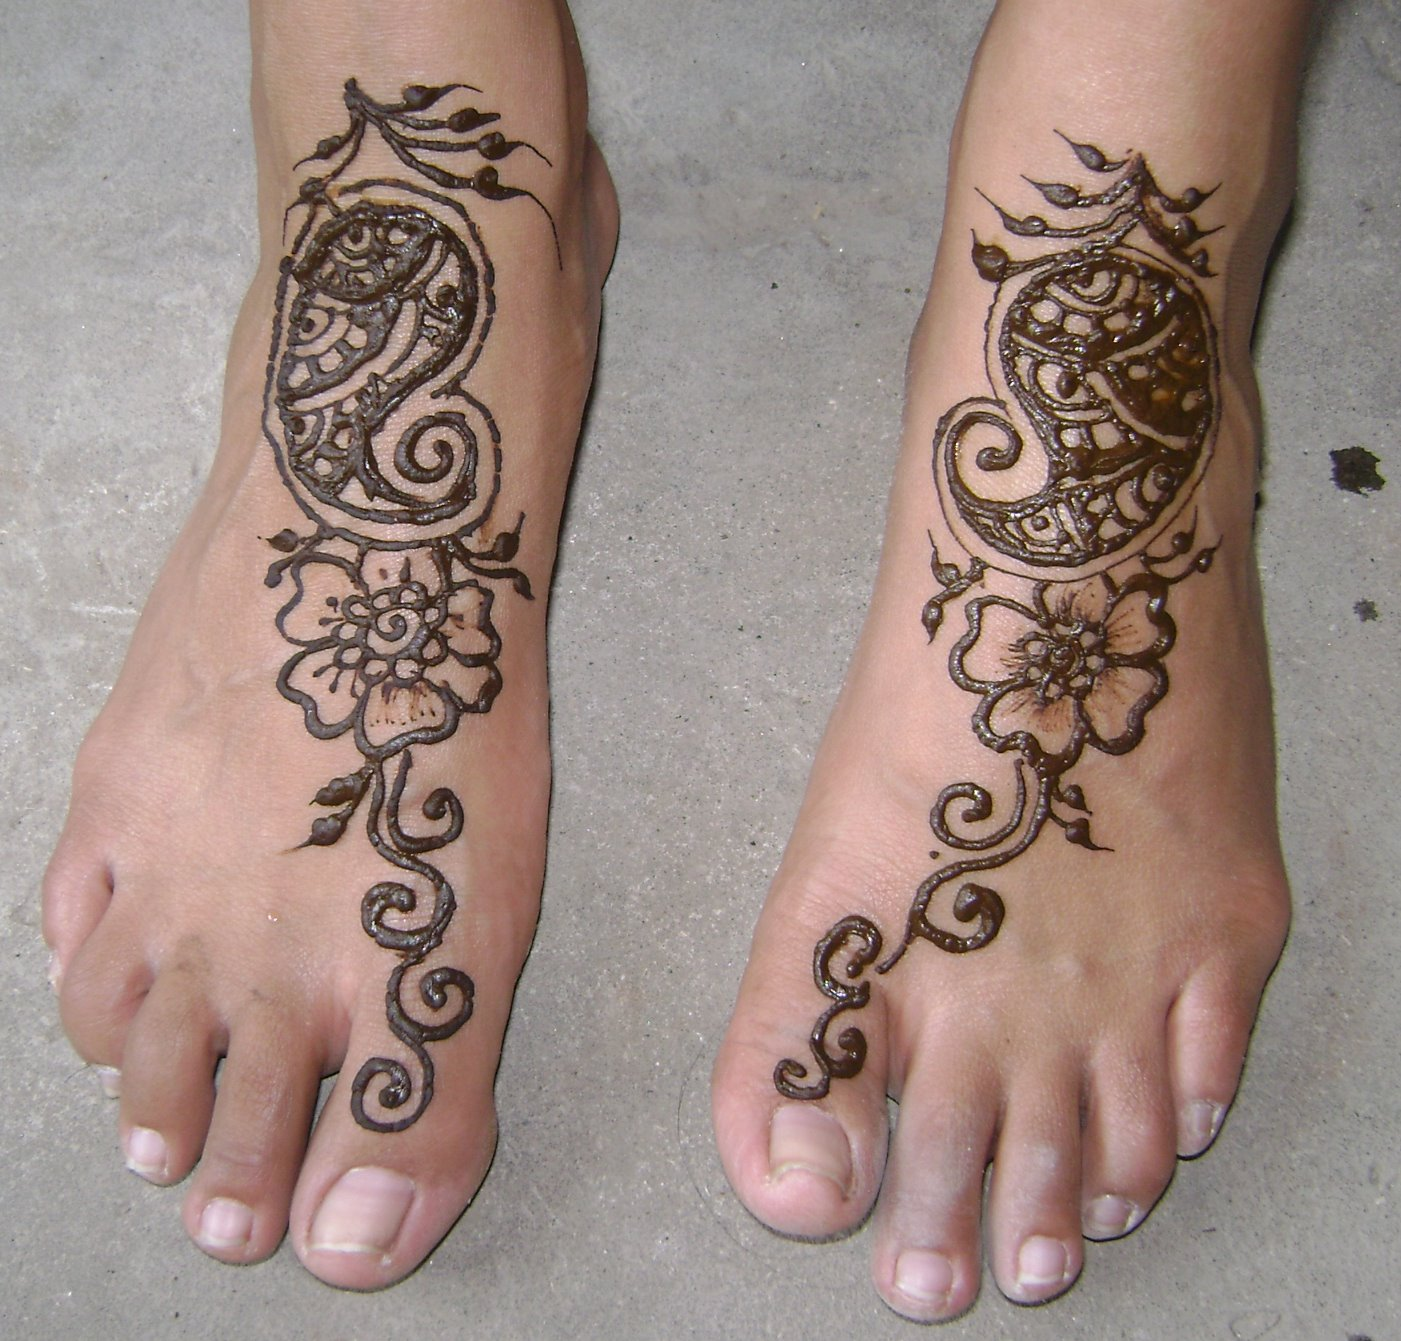 Eid Mehndi Designs on Feet For 2010 – 11: You Love All The Time